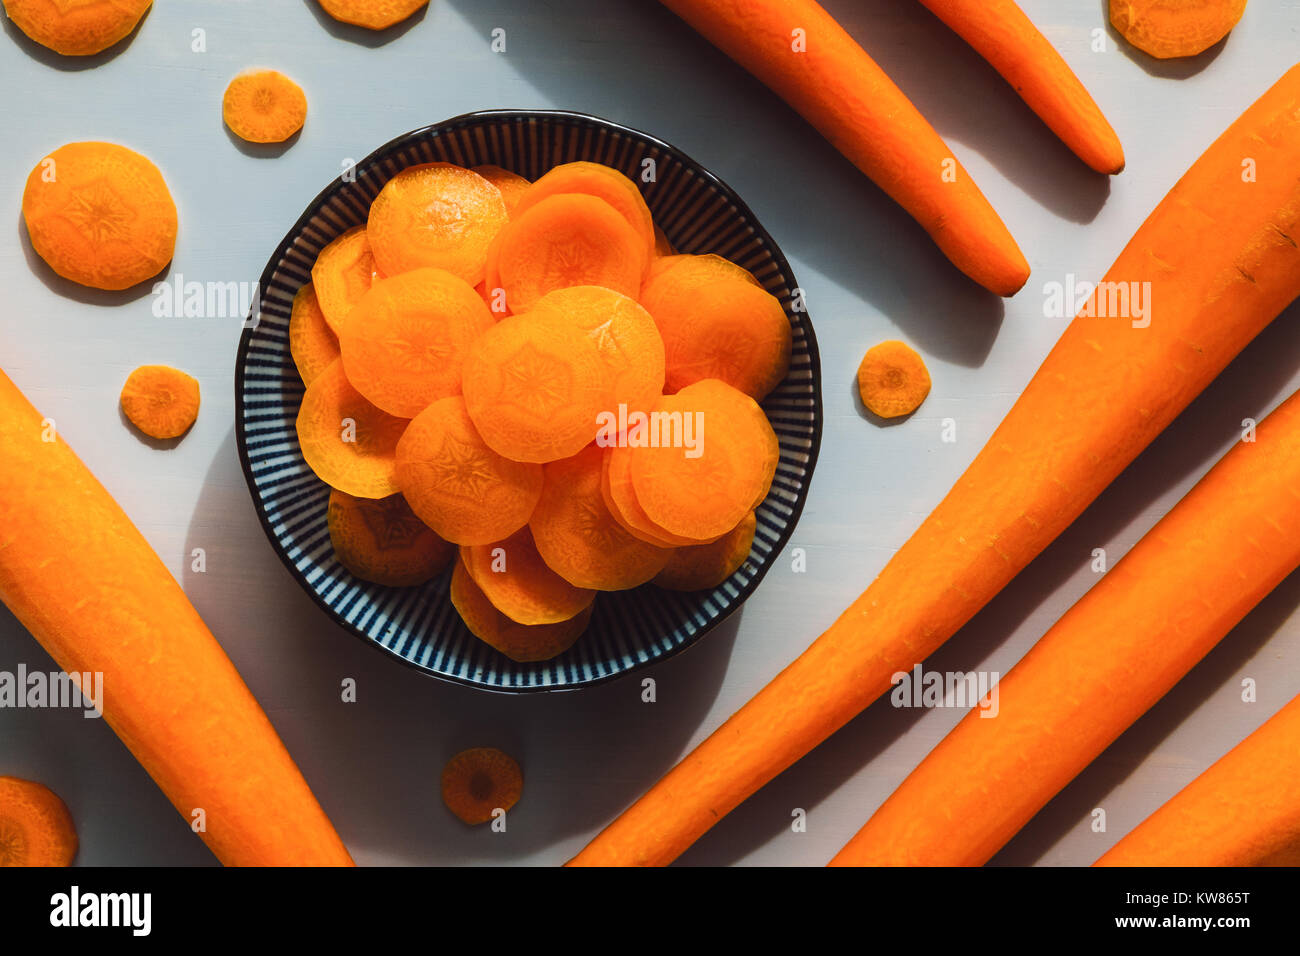 Peeled and Sliced Carrots on Grey Table - Stock Image